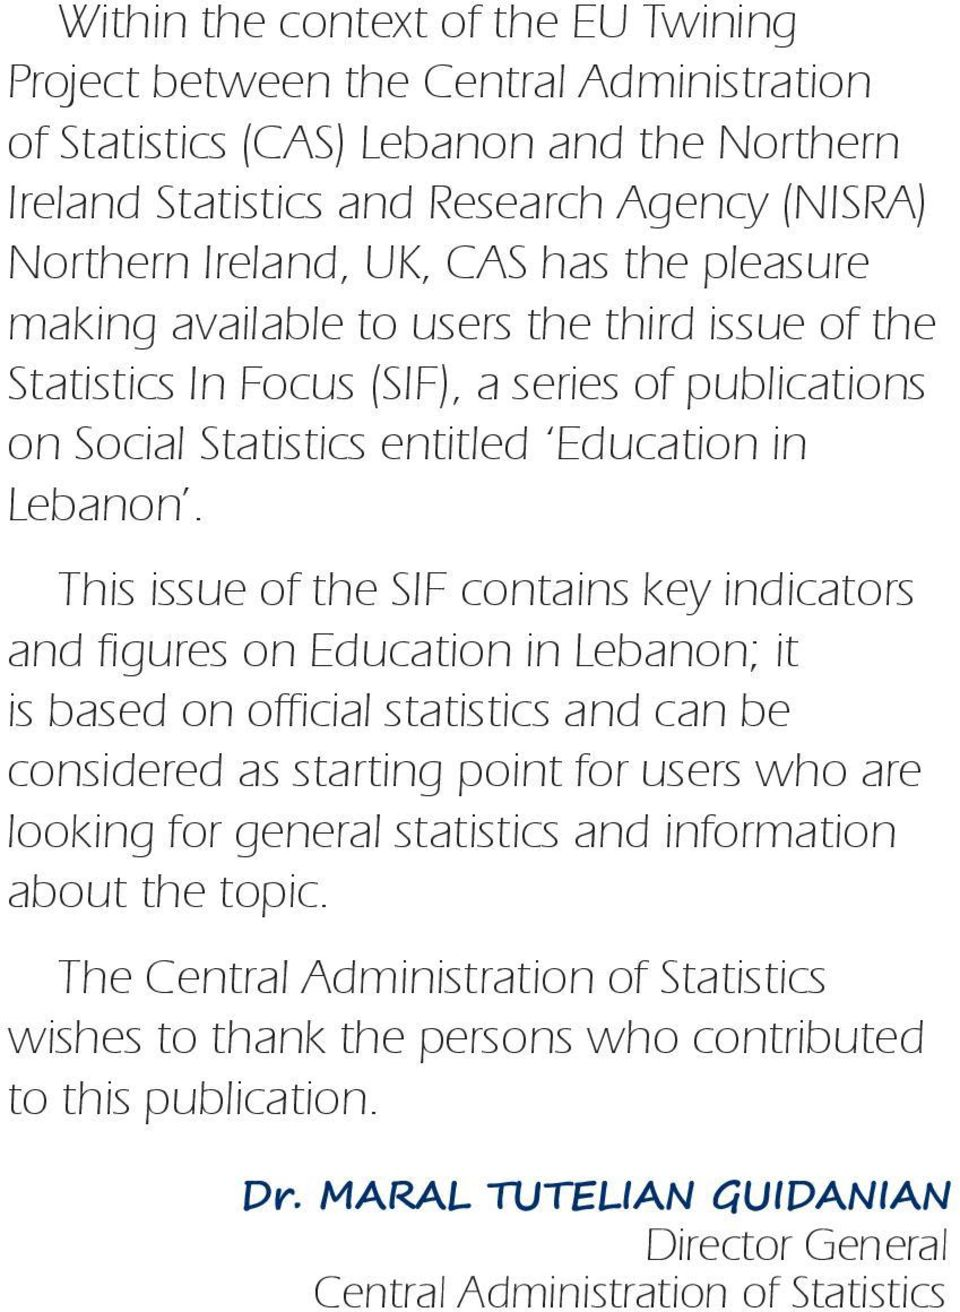 This issue of the SIF contains key indicators and figures on Education in Lebanon; it is based on official statistics and can be considered as starting point for users who are looking for general